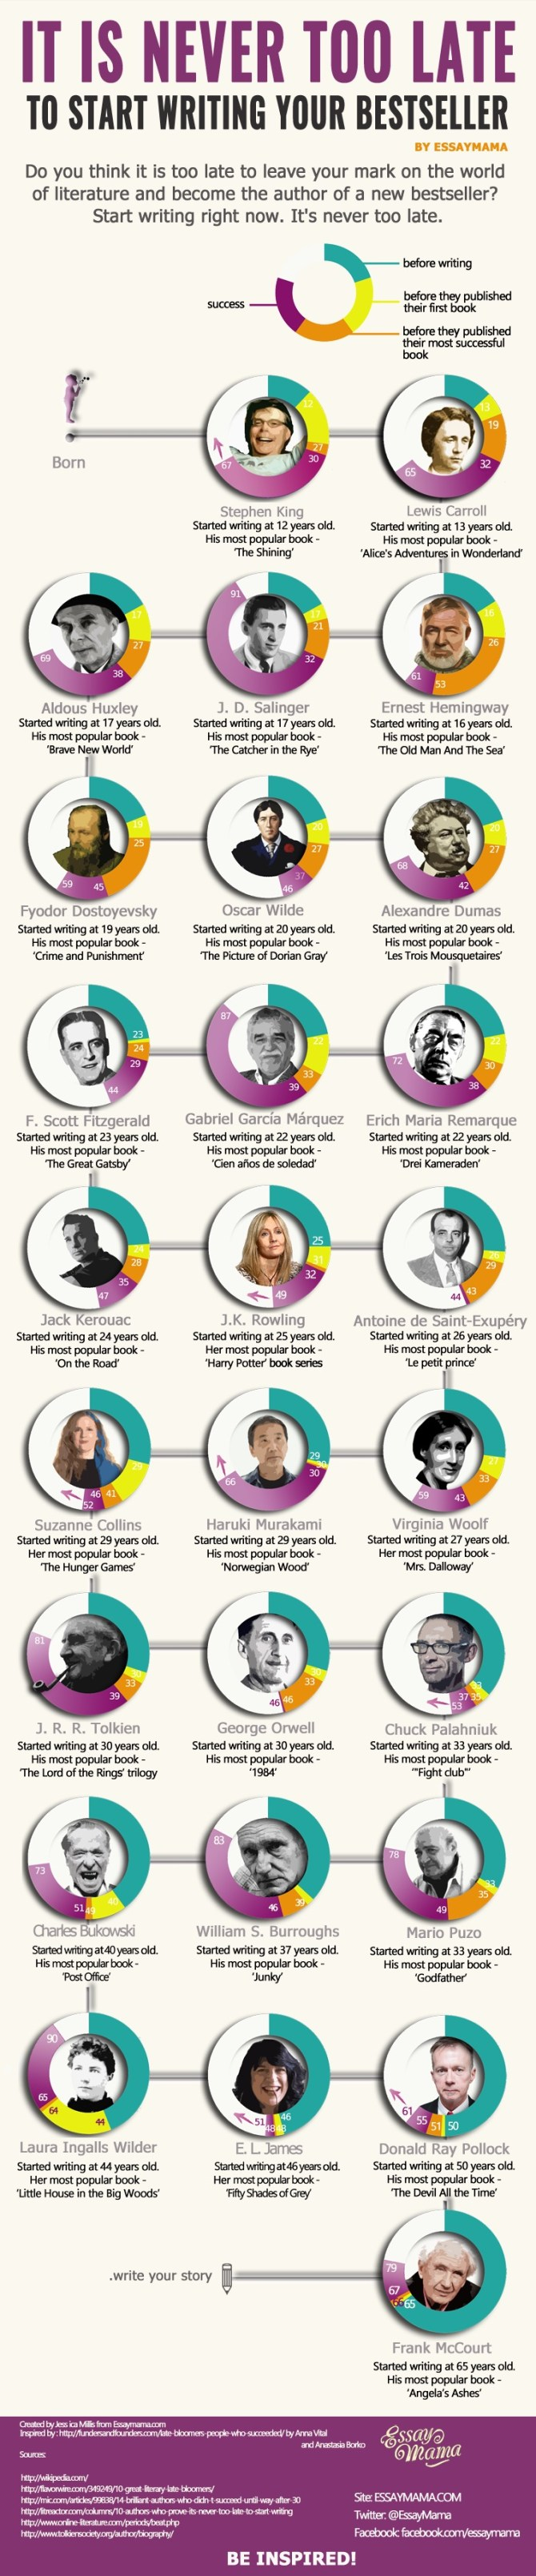 It's never too late to write a bestseller #infographic